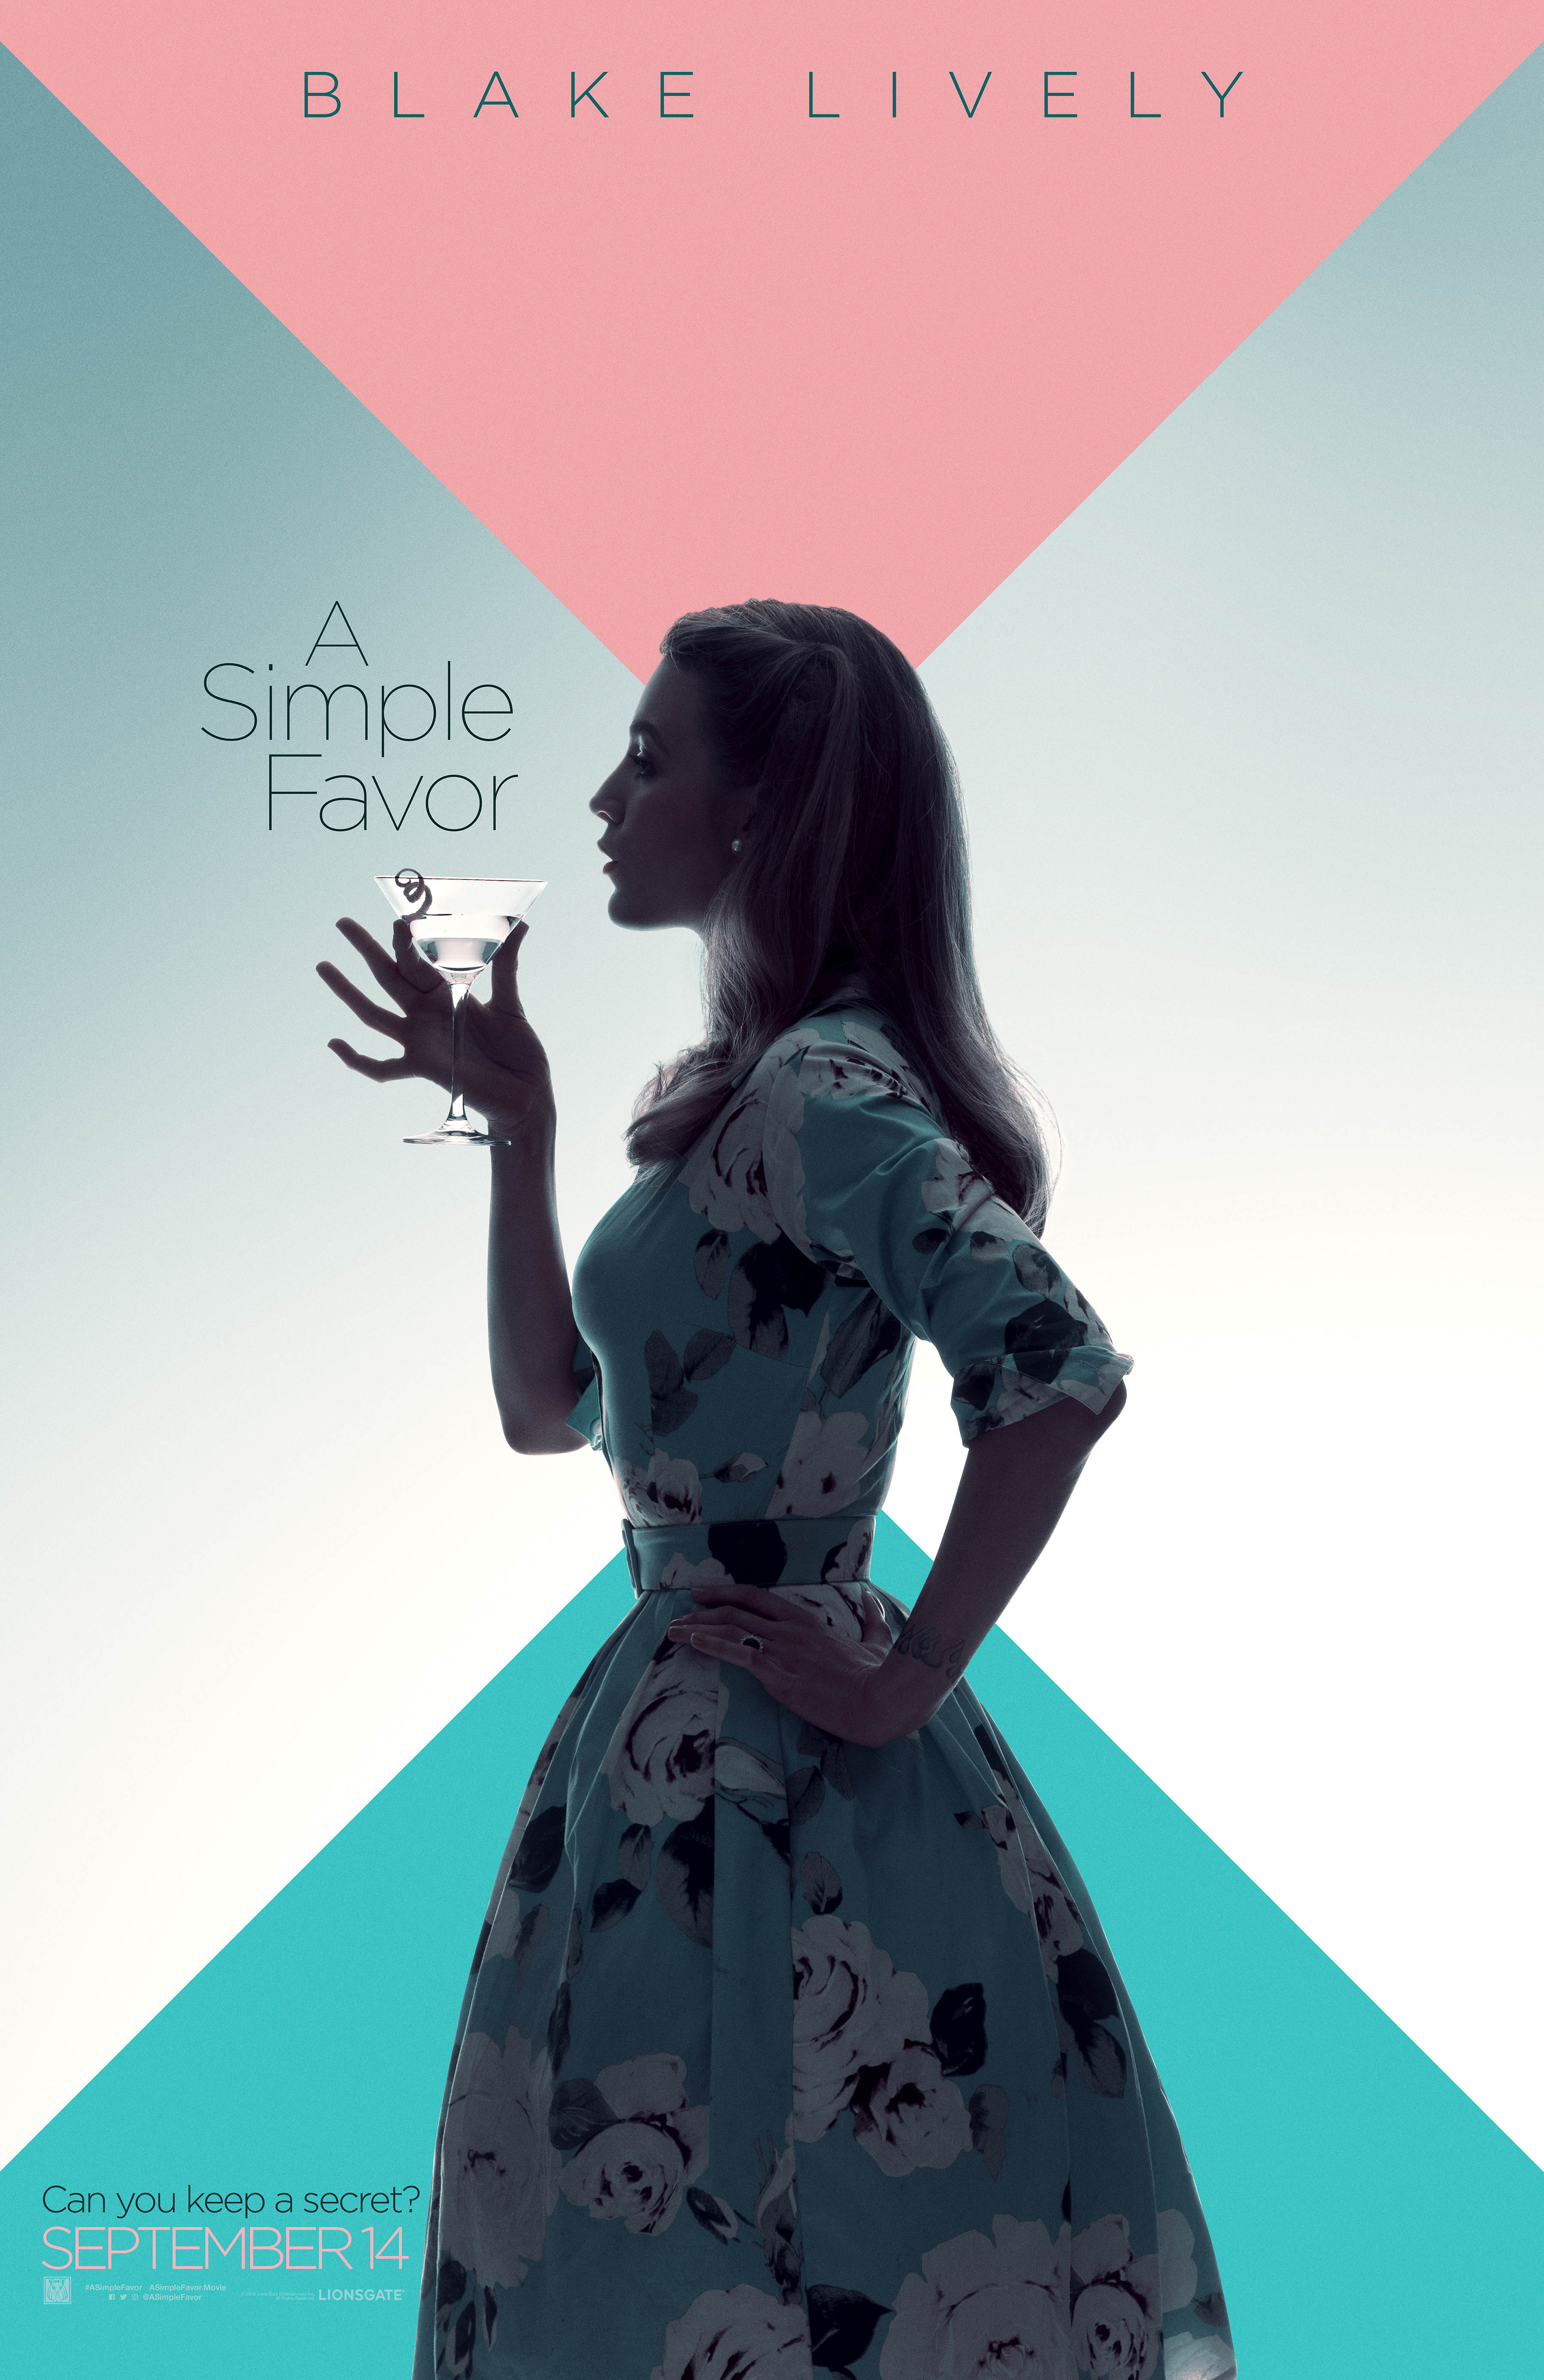 A Simple Favor A Novel Darcey Bell on Amazoncom FREE shipping on qualifying offers Soon to be a major motion picture from Lionsgate starring Anna Kendrick